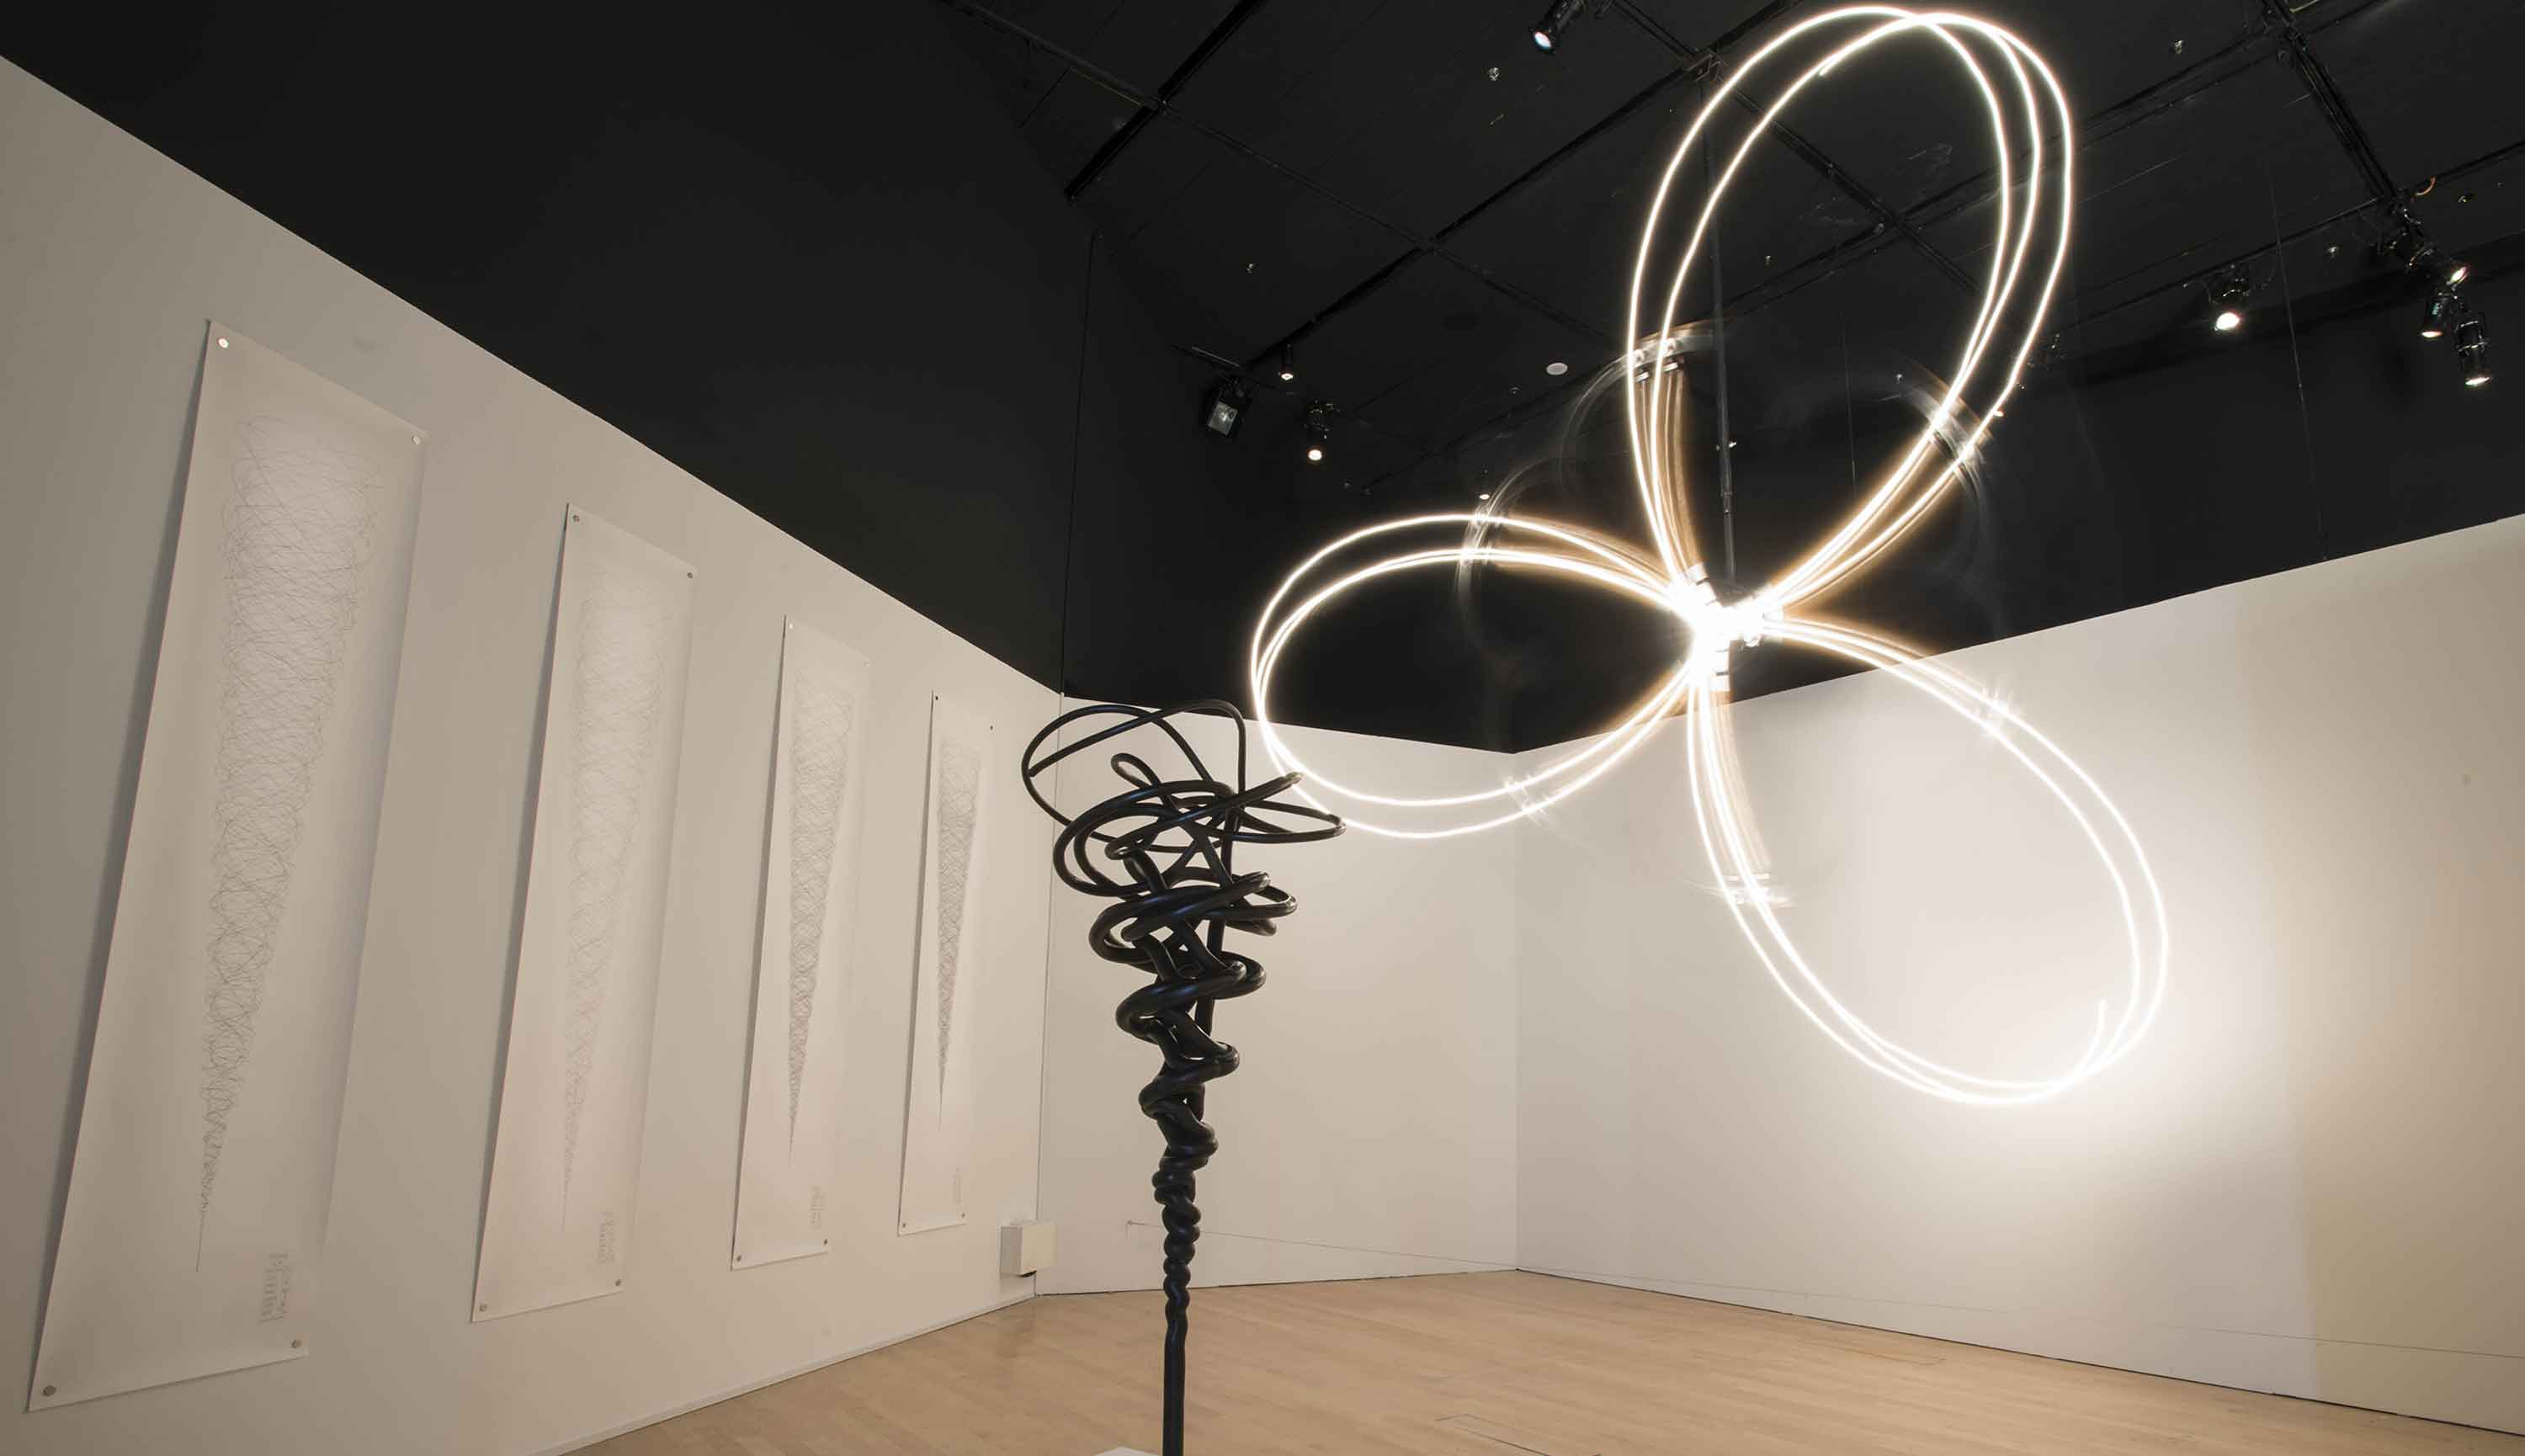 Conrad Shawcross Projections of the Perfect Third, 2011 Gallery Image